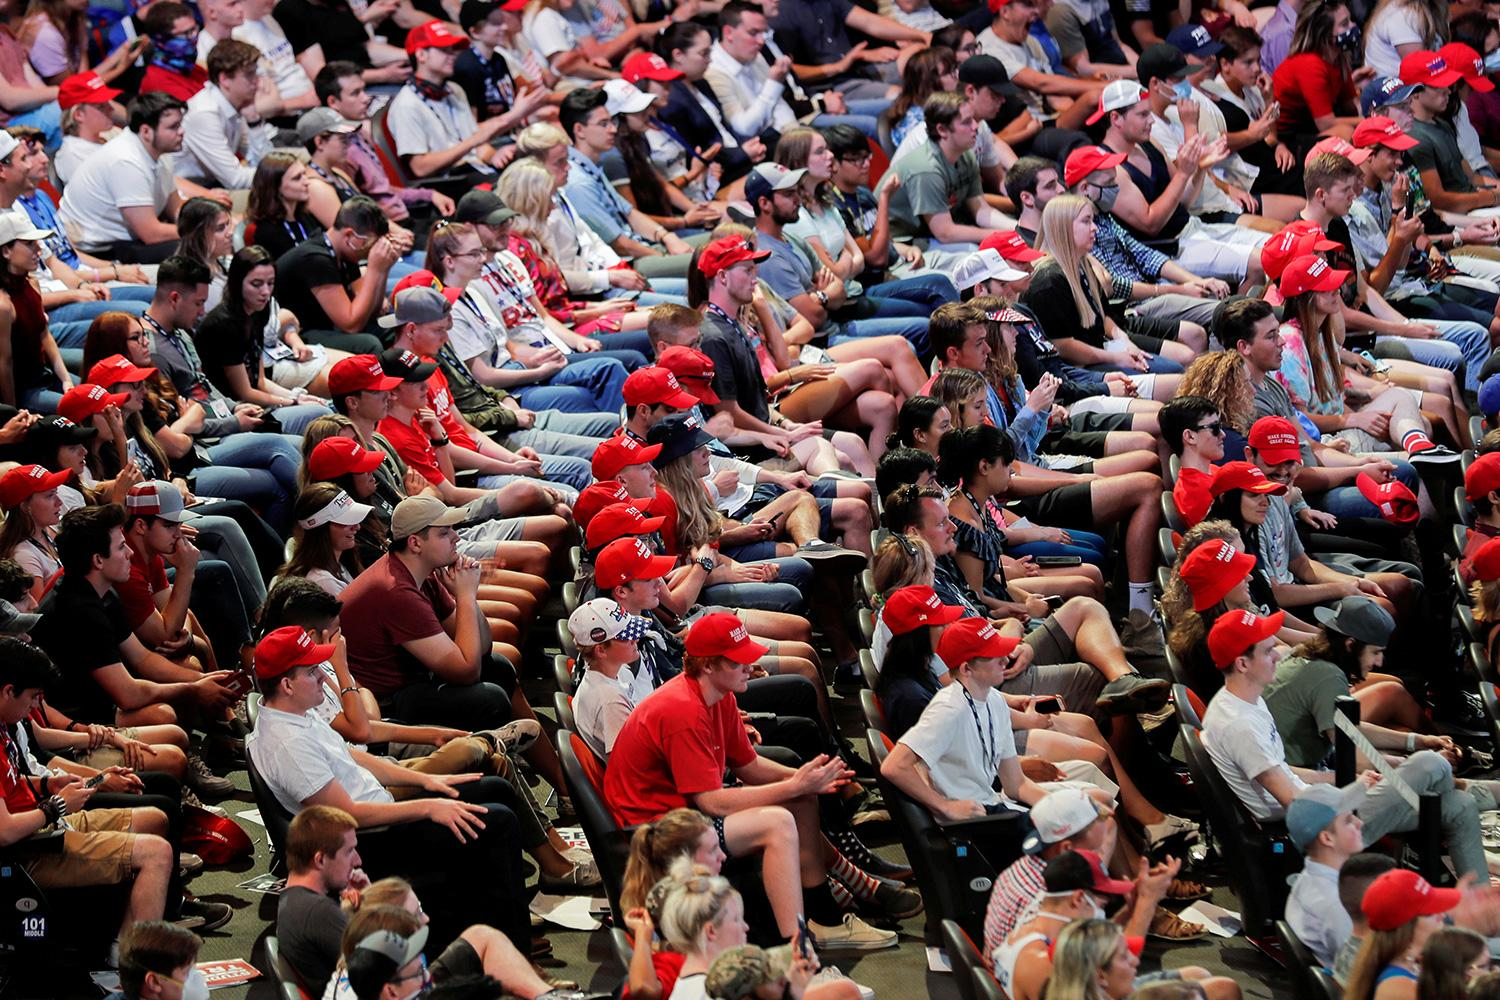 Ignoring the science on social distancing, not congregating indoors, and wearing masks, young people listen to U.S. President Donald J. Trump at the Dream City Church in Phoenix on June 23, 2020. The photo shows a huge crowd of yound people, very few wearing masks, packed into theater-like seats. REUTERS/Carlos Barria